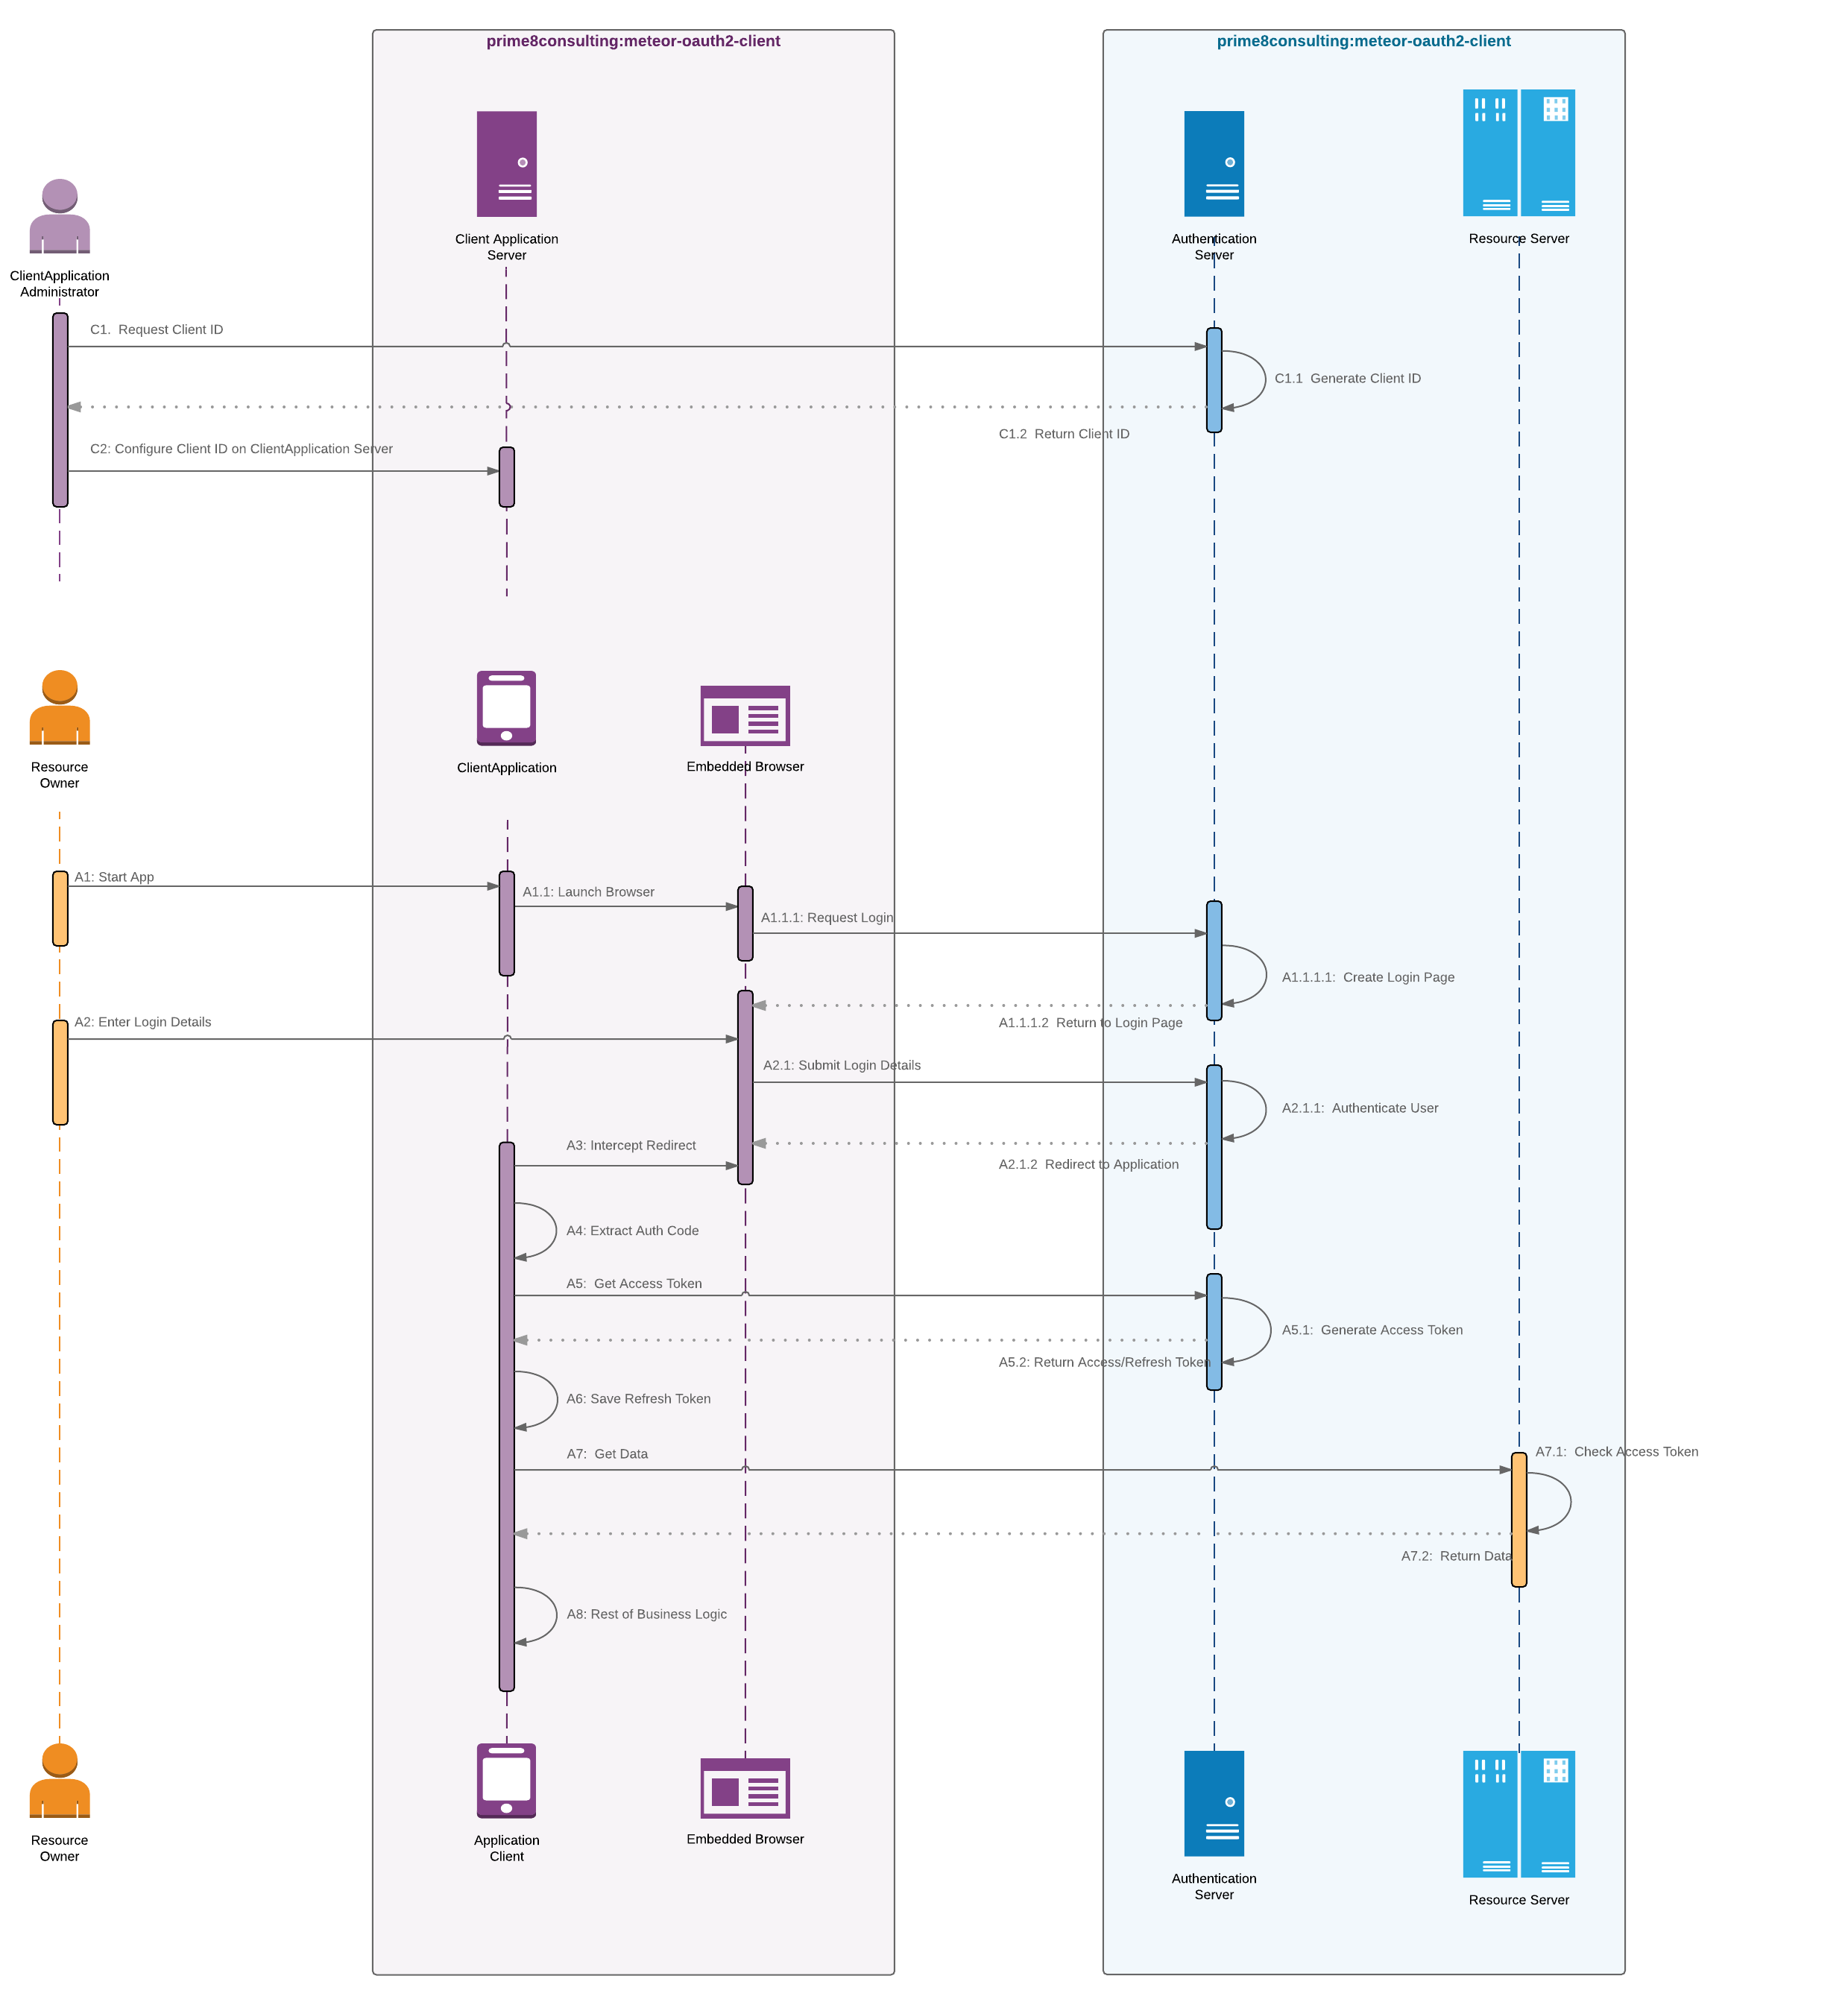 Hl7 fhir flowchart issue 6 prime 8 consultingmeteor oauth2 oauthwebsequencewithconfig nvjuhfo Choice Image